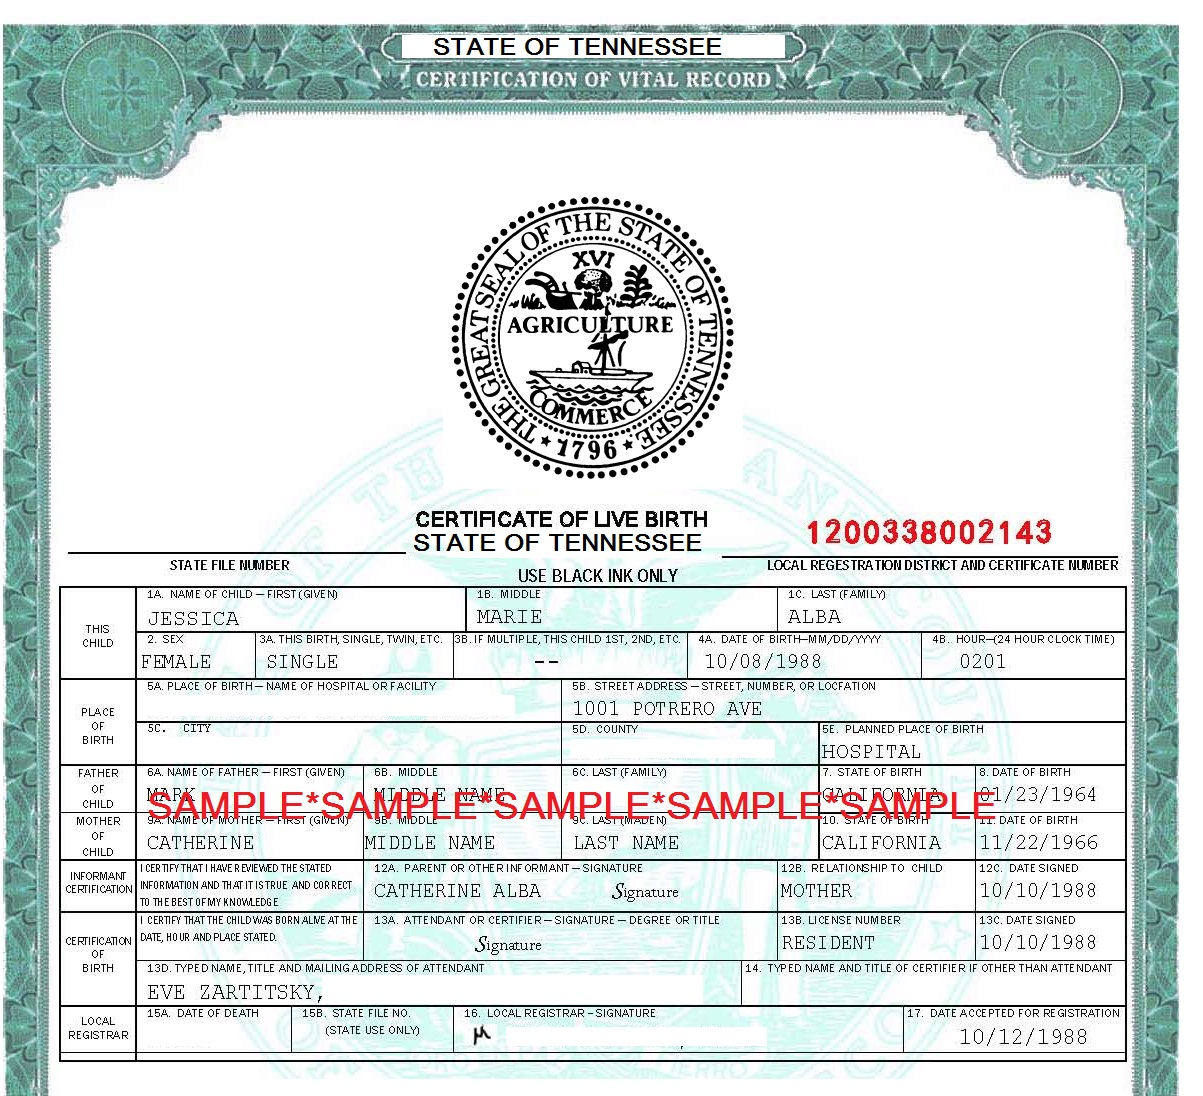 Need a birth certificate you will have to go to a new location the tennessee department of health office of vital records which provides copies of birth certificates and other important documents is moving xflitez Choice Image